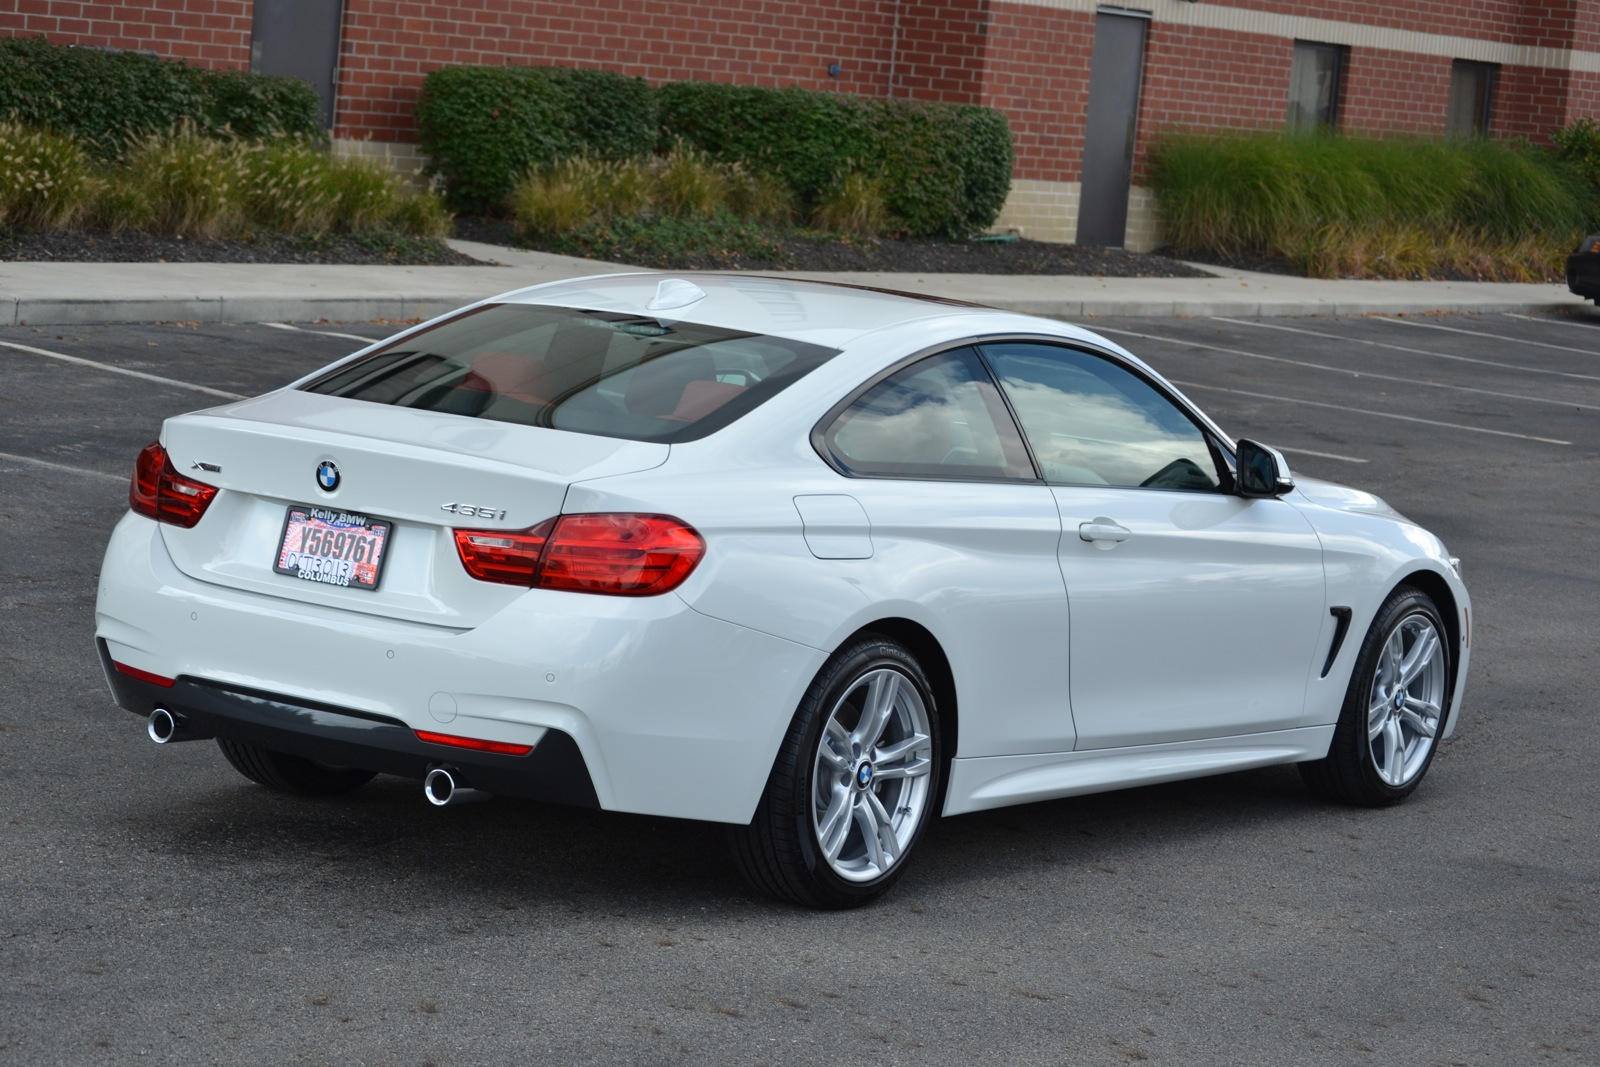 Bmw 435i zhp coupe 2016 pictures information amp specs - Bmw 435i Zhp Coupe 2016 Pictures Information Amp Specs 29